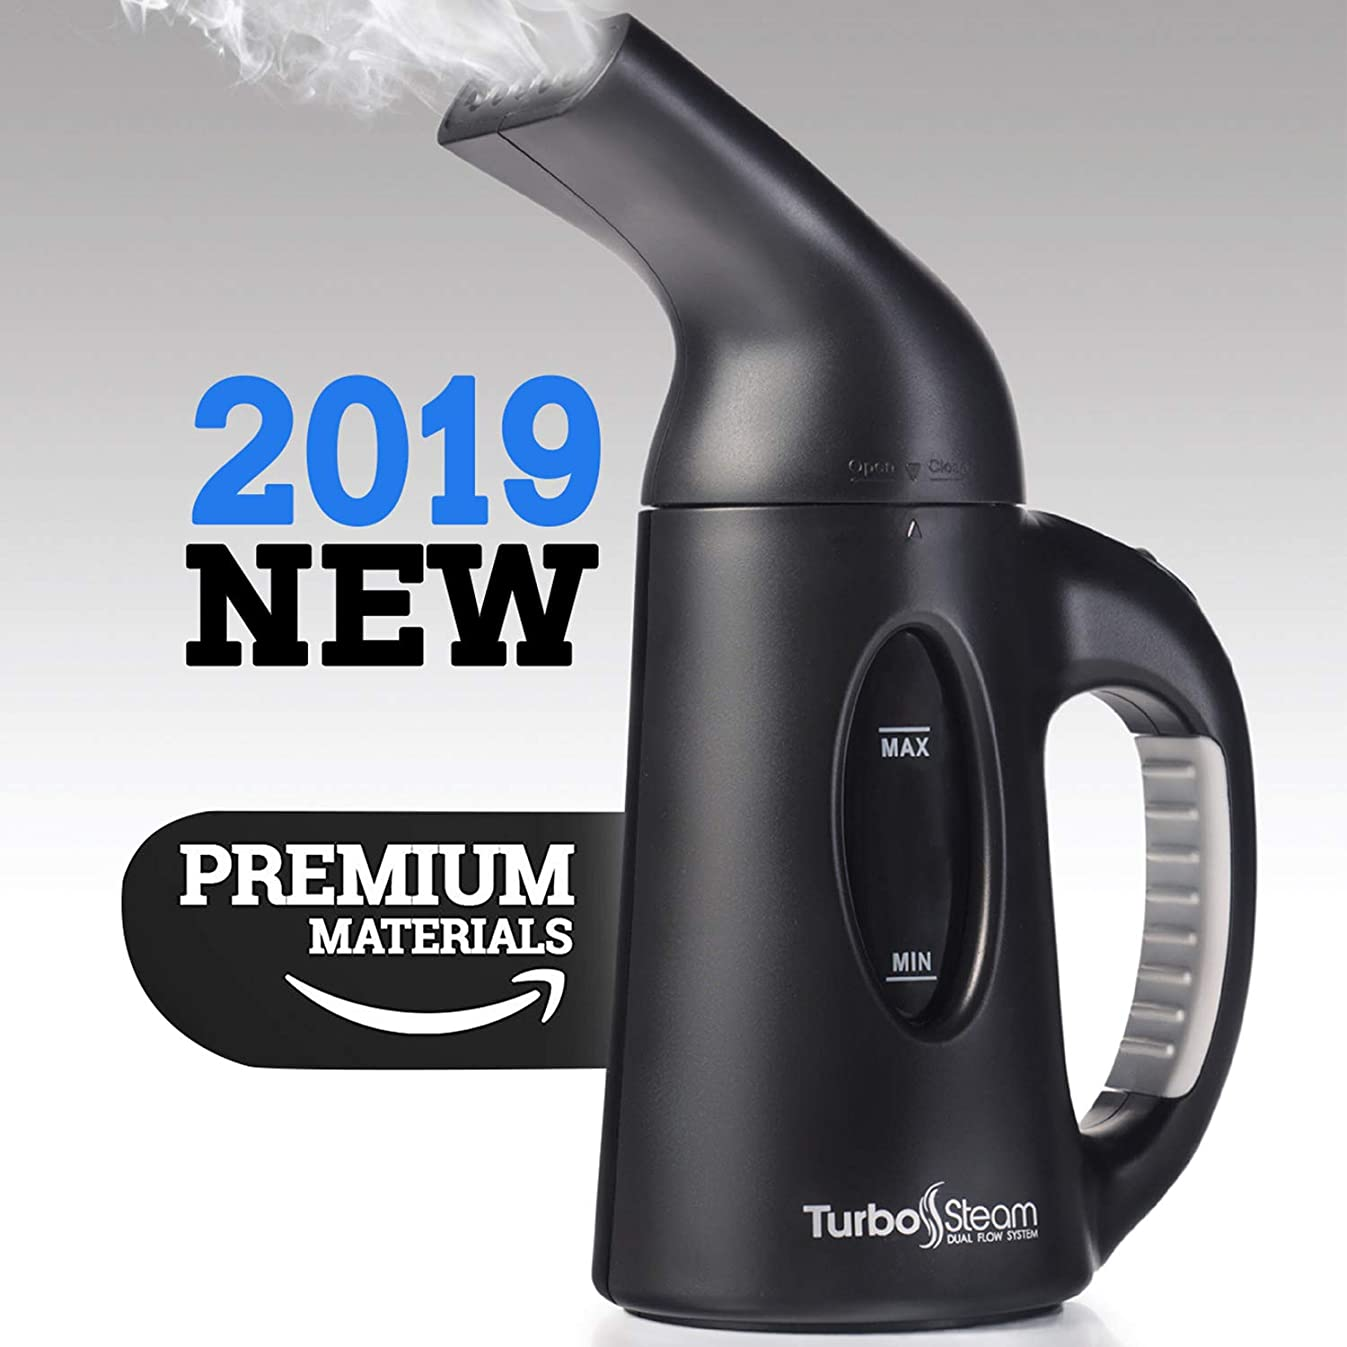 TurboSteam Handheld Steamer for Clothes & Fabrics – Multi-Use, 850W Powerful, Portable Travel Steamer & Sanitizer – 45s Fast Heat-up with Auto Turn-Off for Household Cleaning, Speedy Wrinkle Releas